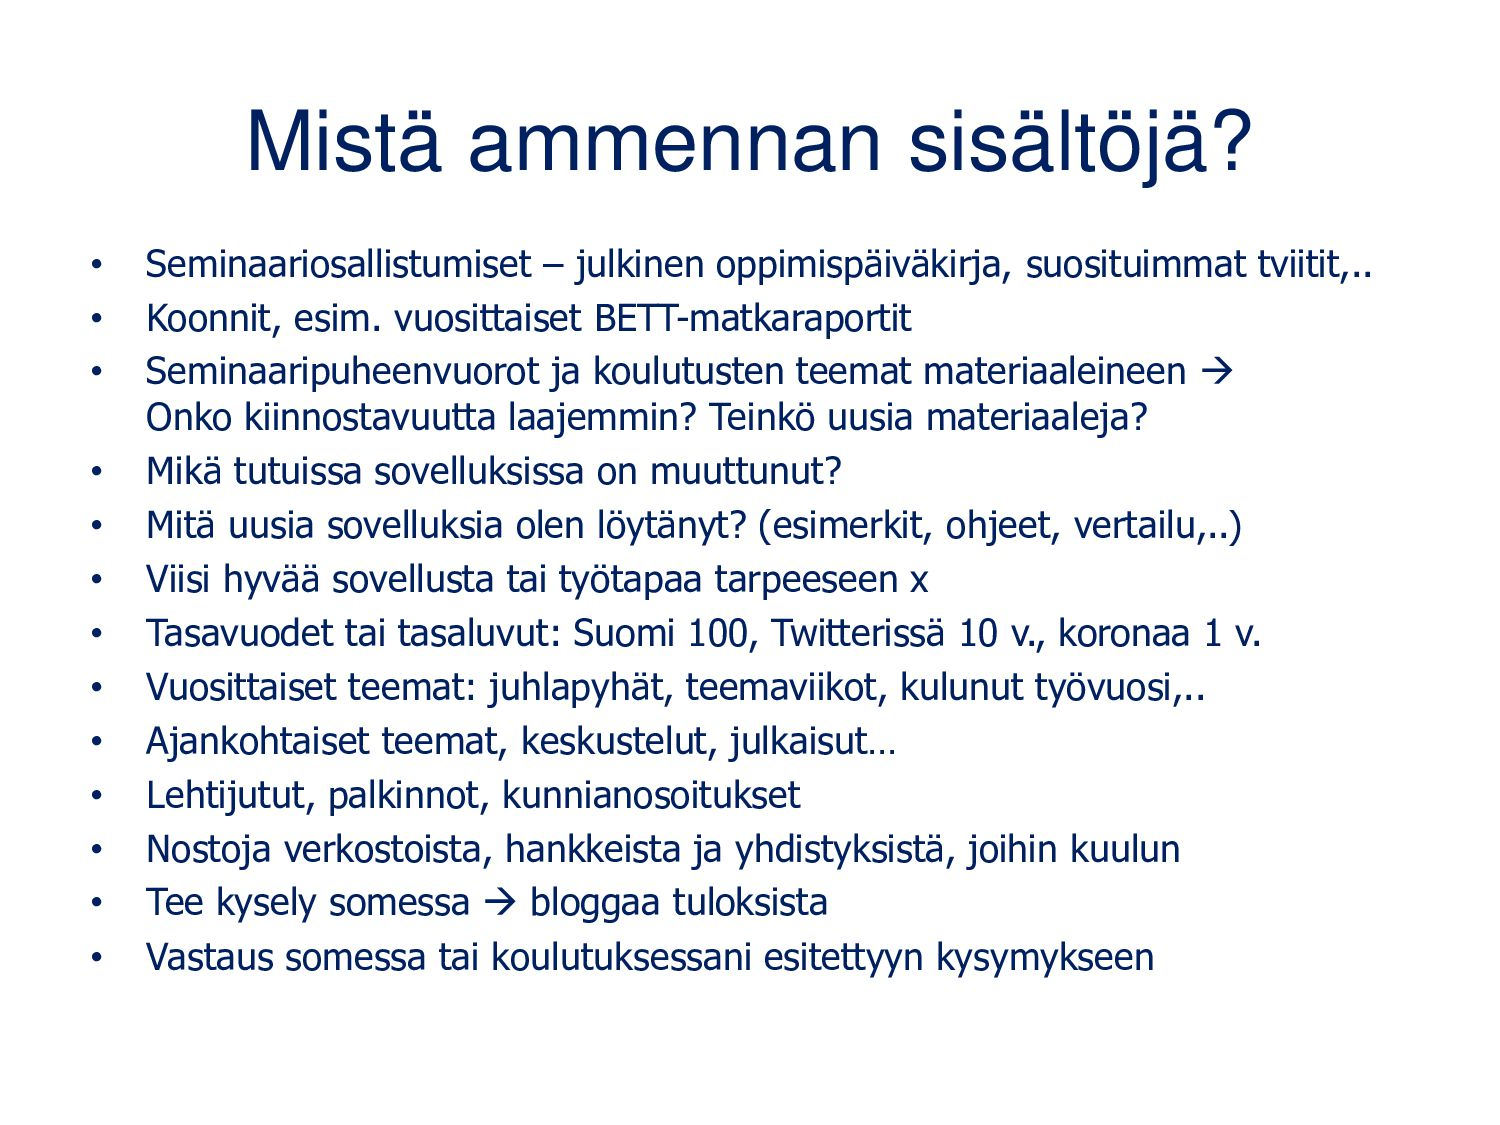 Laadukkaat blogikommentit youtube.com/watch?fea...